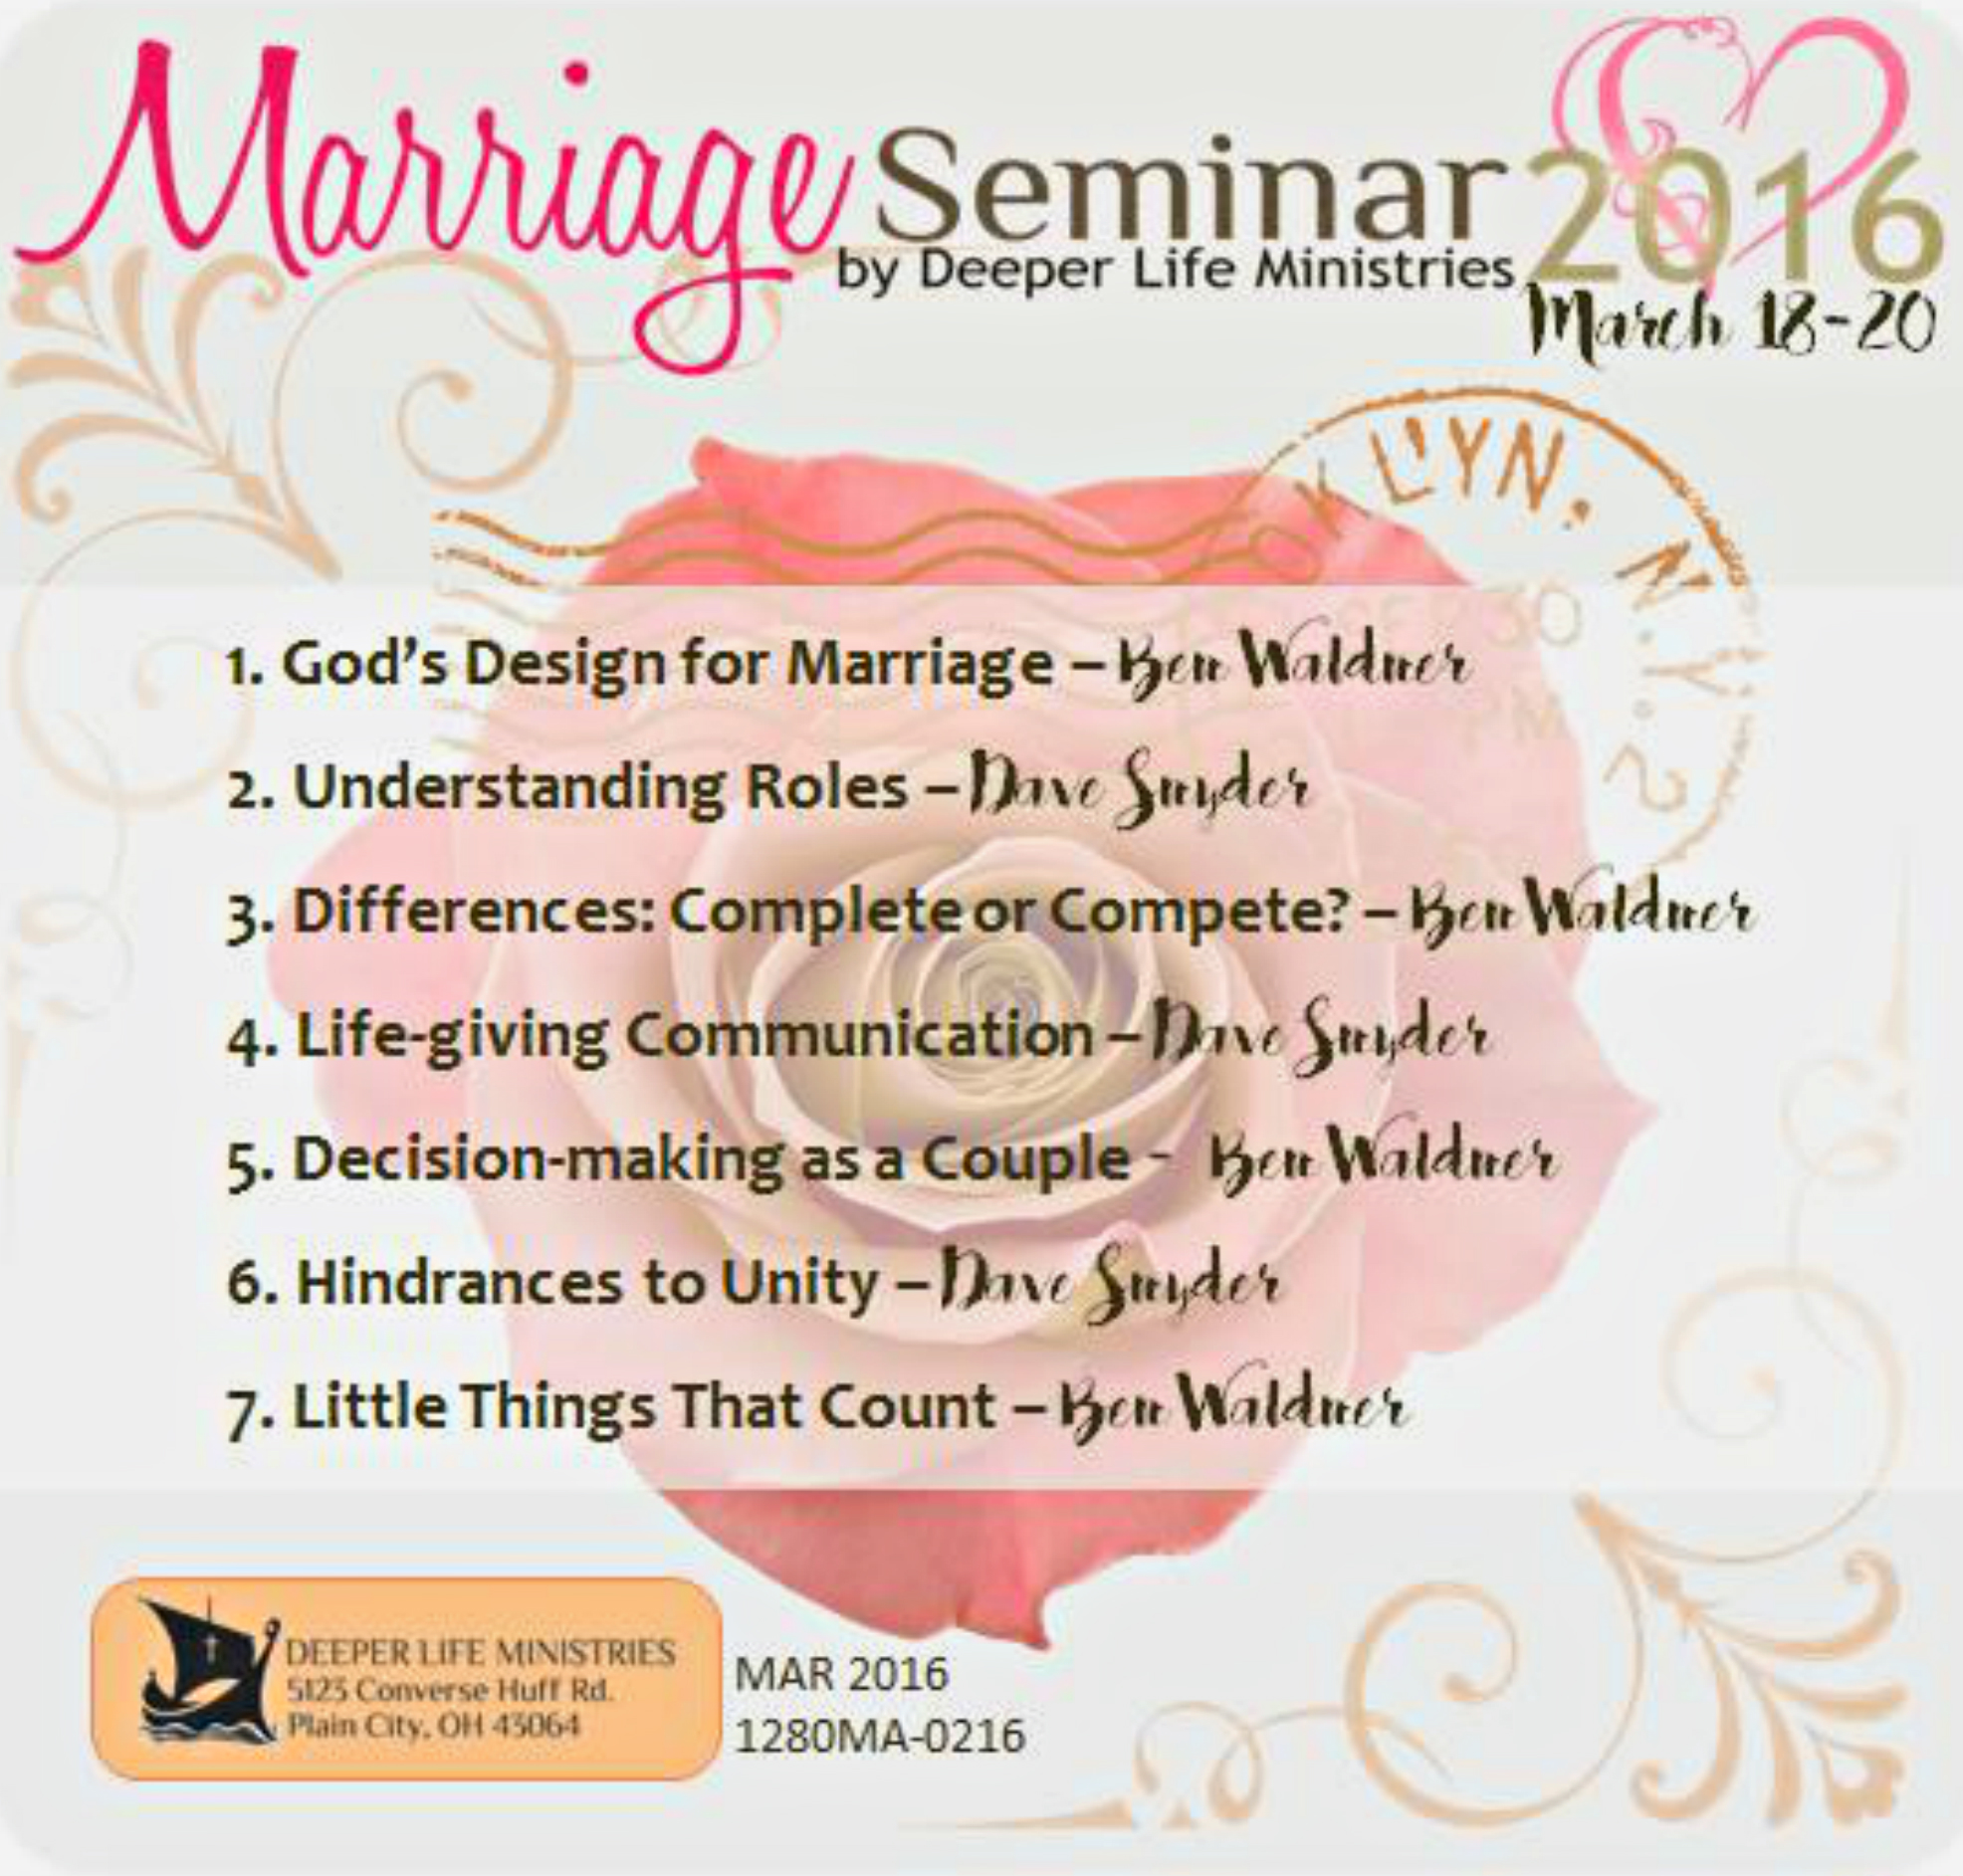 MARRIAGE SEMINAR 2016 Snyder and Waldner